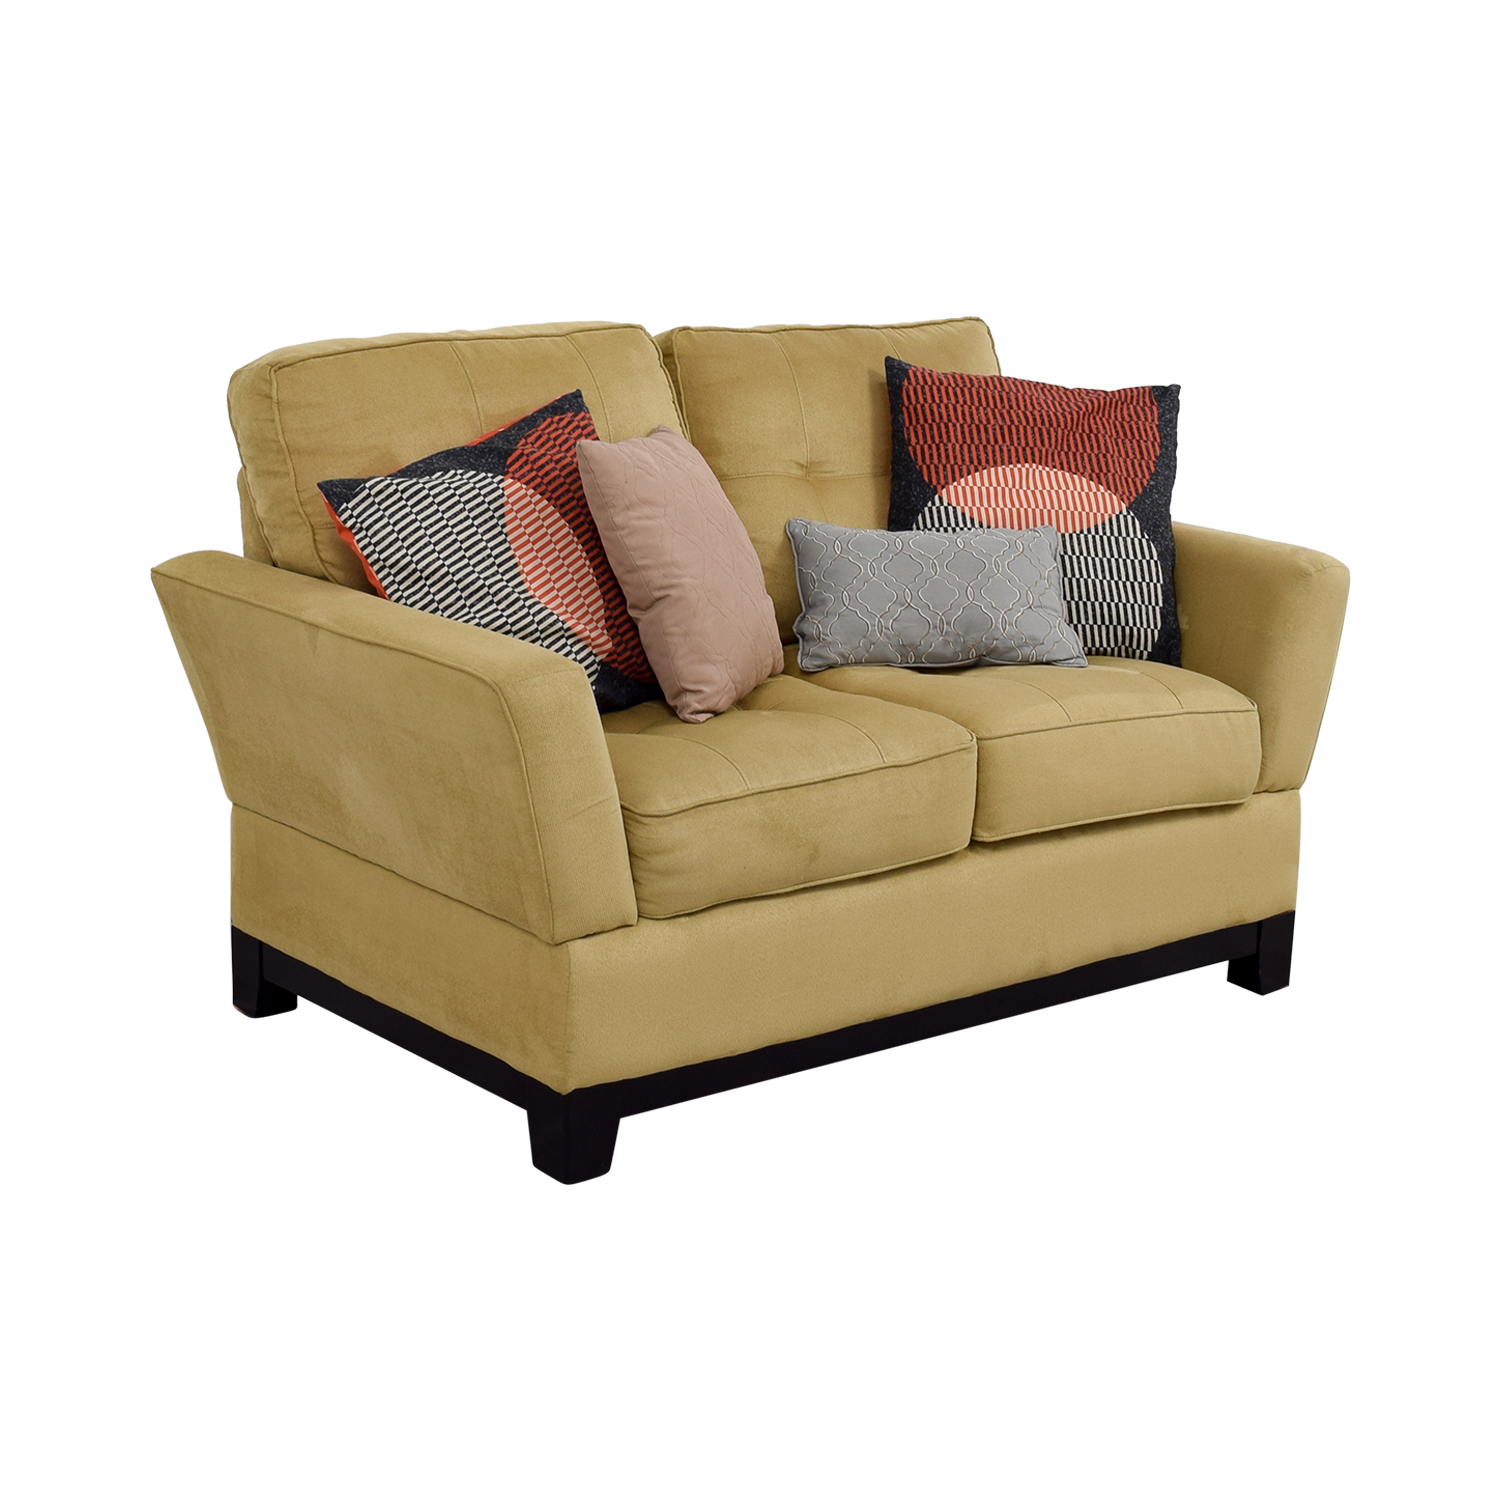 77 off ashley furniture ashley furniture tan loveseat sofas Ashley couch and loveseat